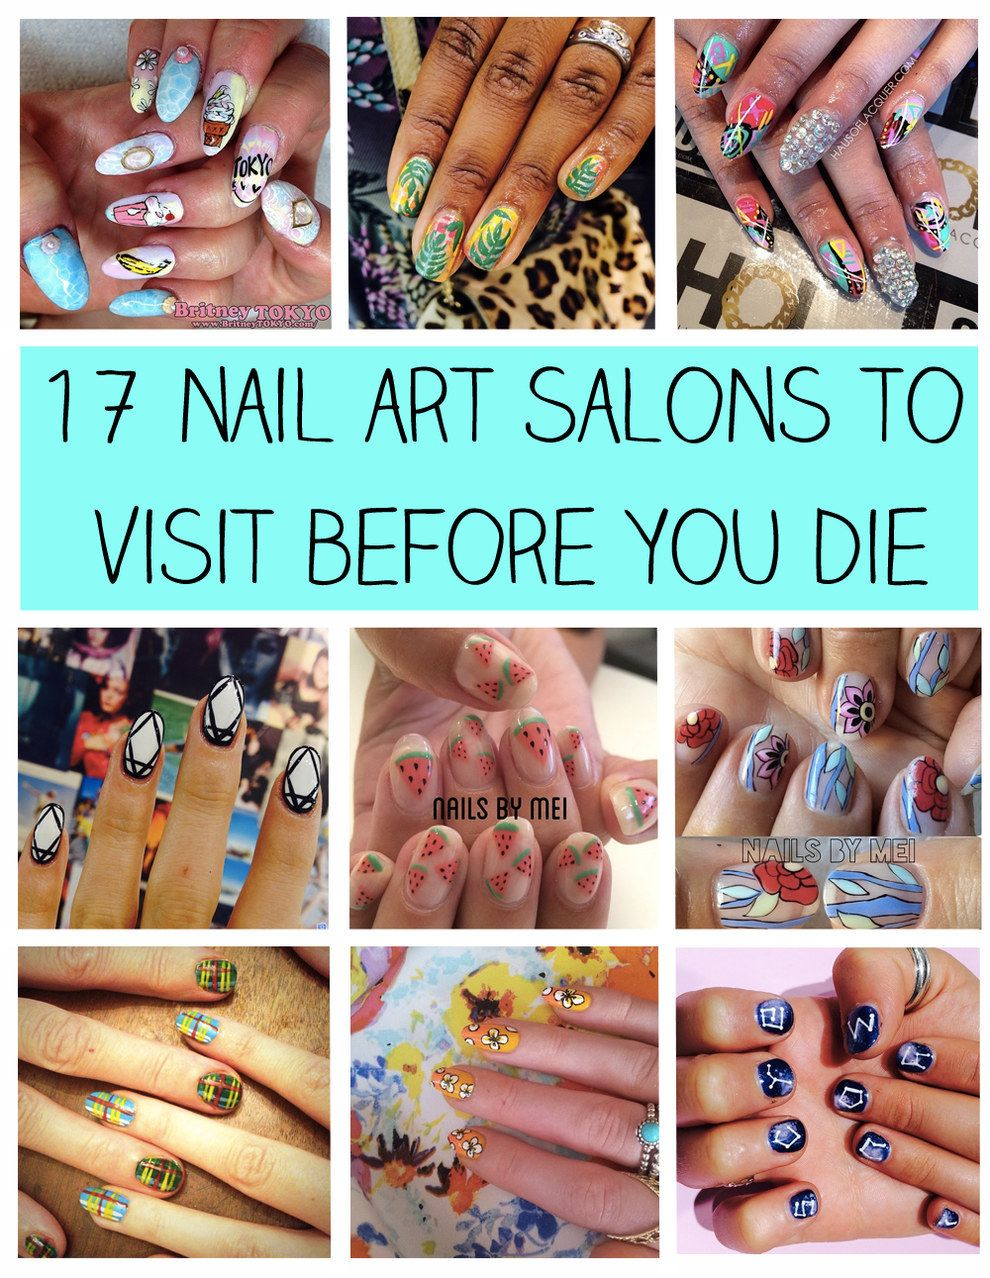 17 Nail Art Salons You Have To Visit Before You Die | Nail art salon ...